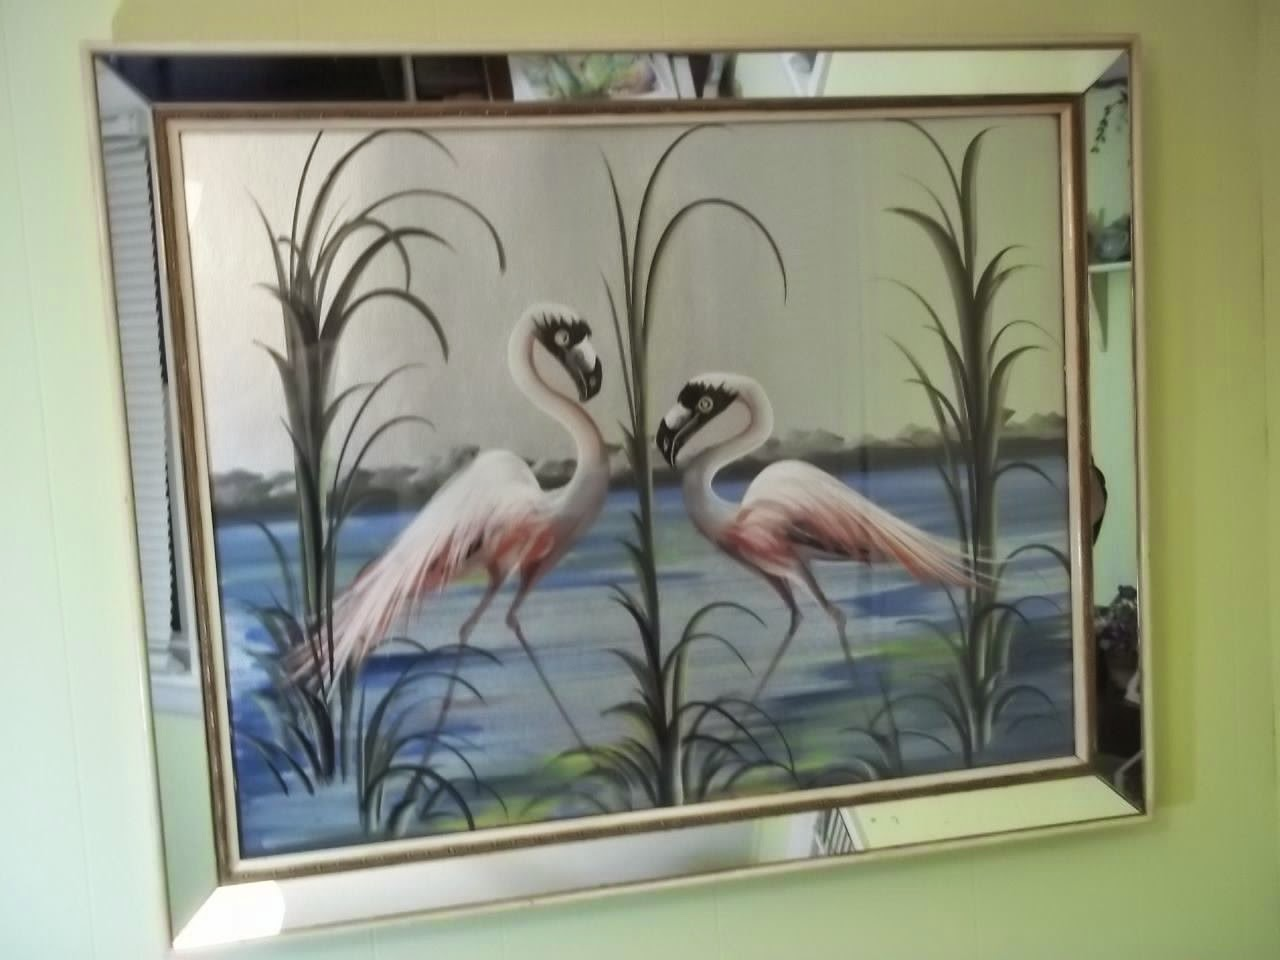 Paintings By M Devoe: TWO FLAMINGOS IN THE ORIGINAL